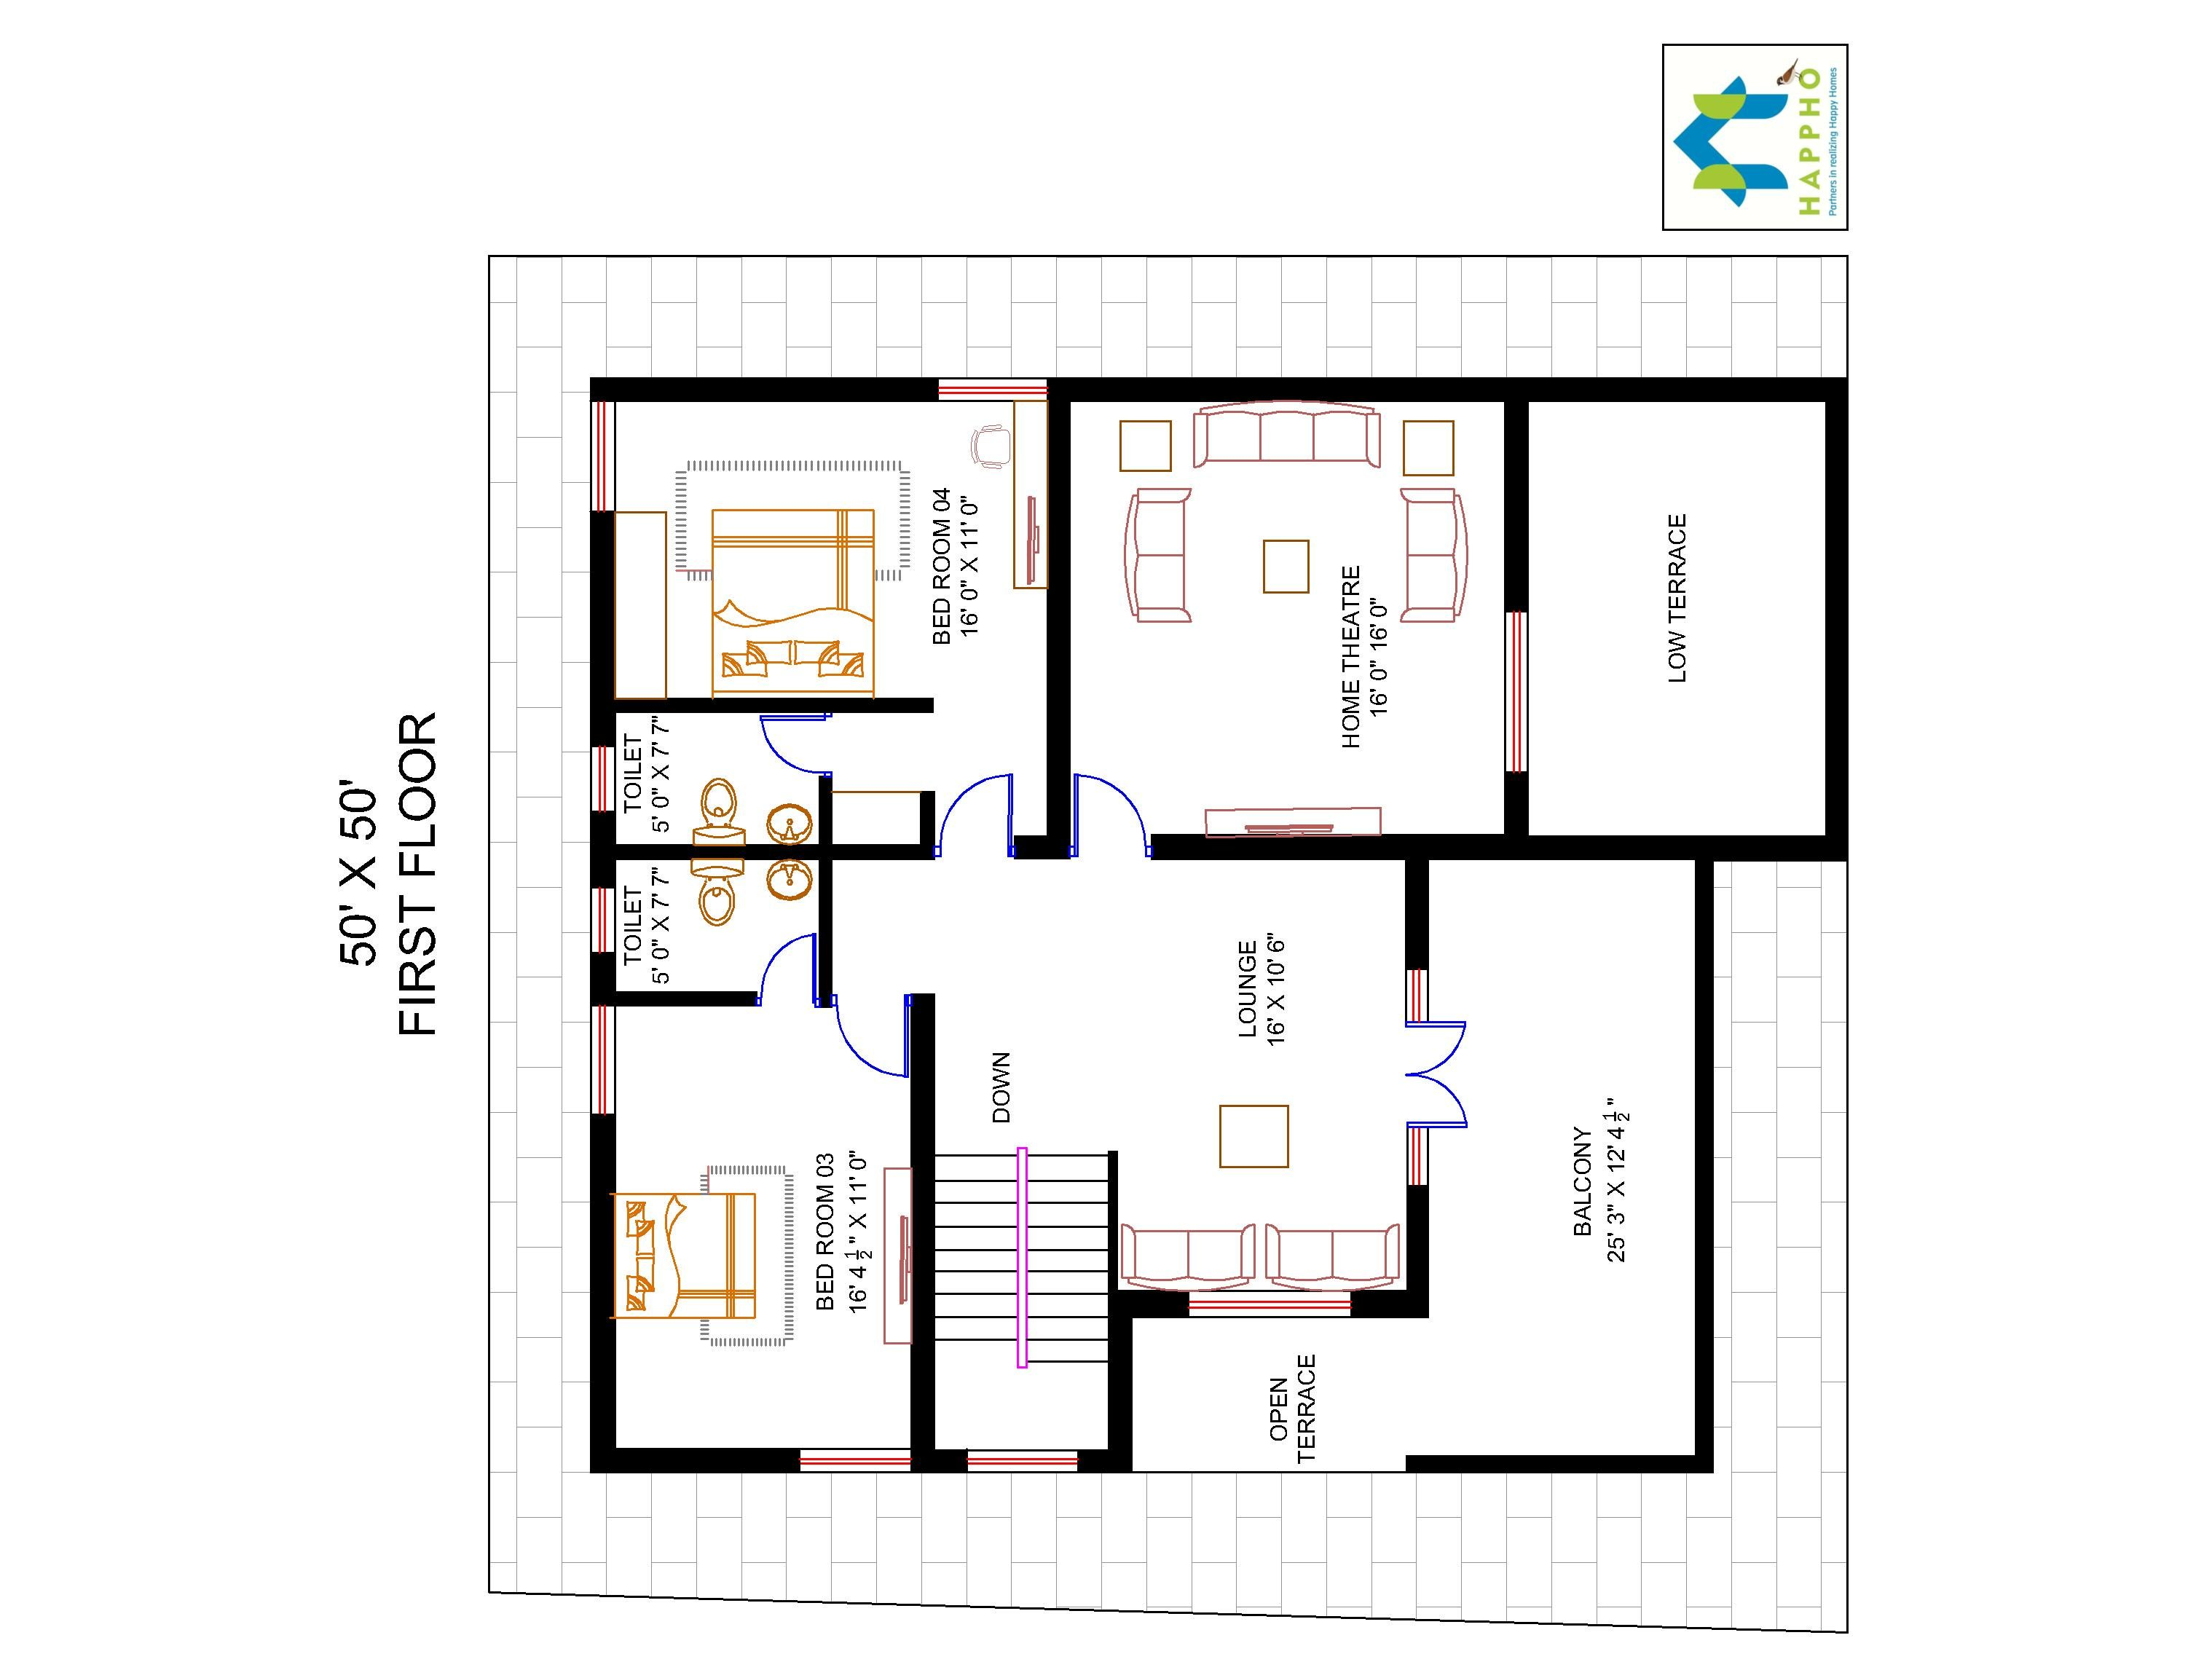 2500 sq ft bungalow floor plans for Floor plans 2500 square feet